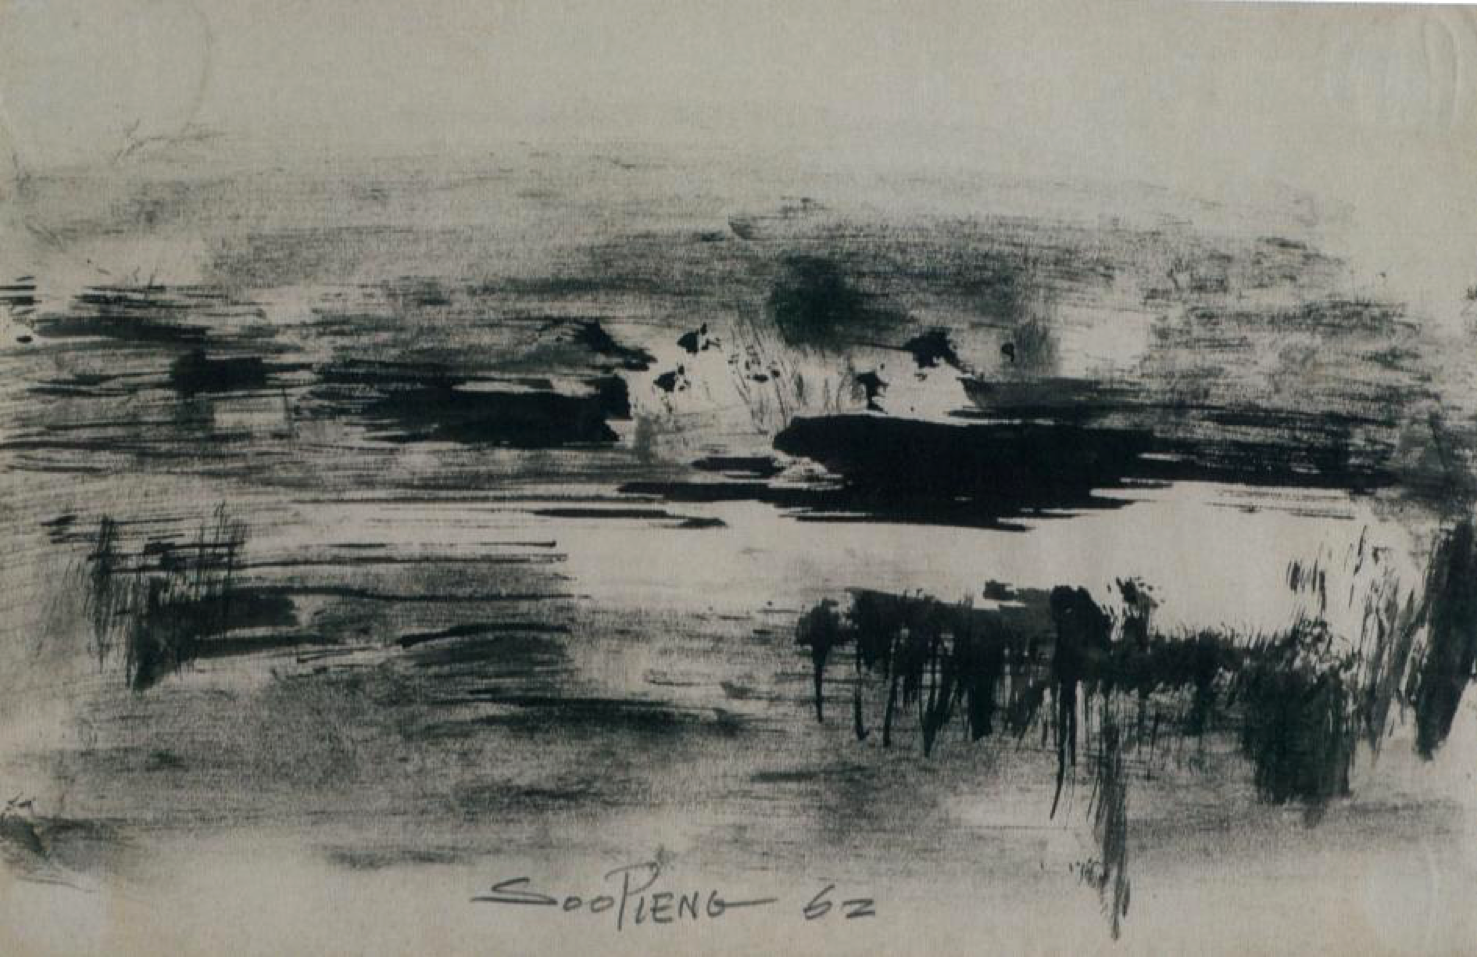 Cheong Soo Pieng, Abstract Composition I, ink and colour on paper, 15 x 22.5 cm, 1962